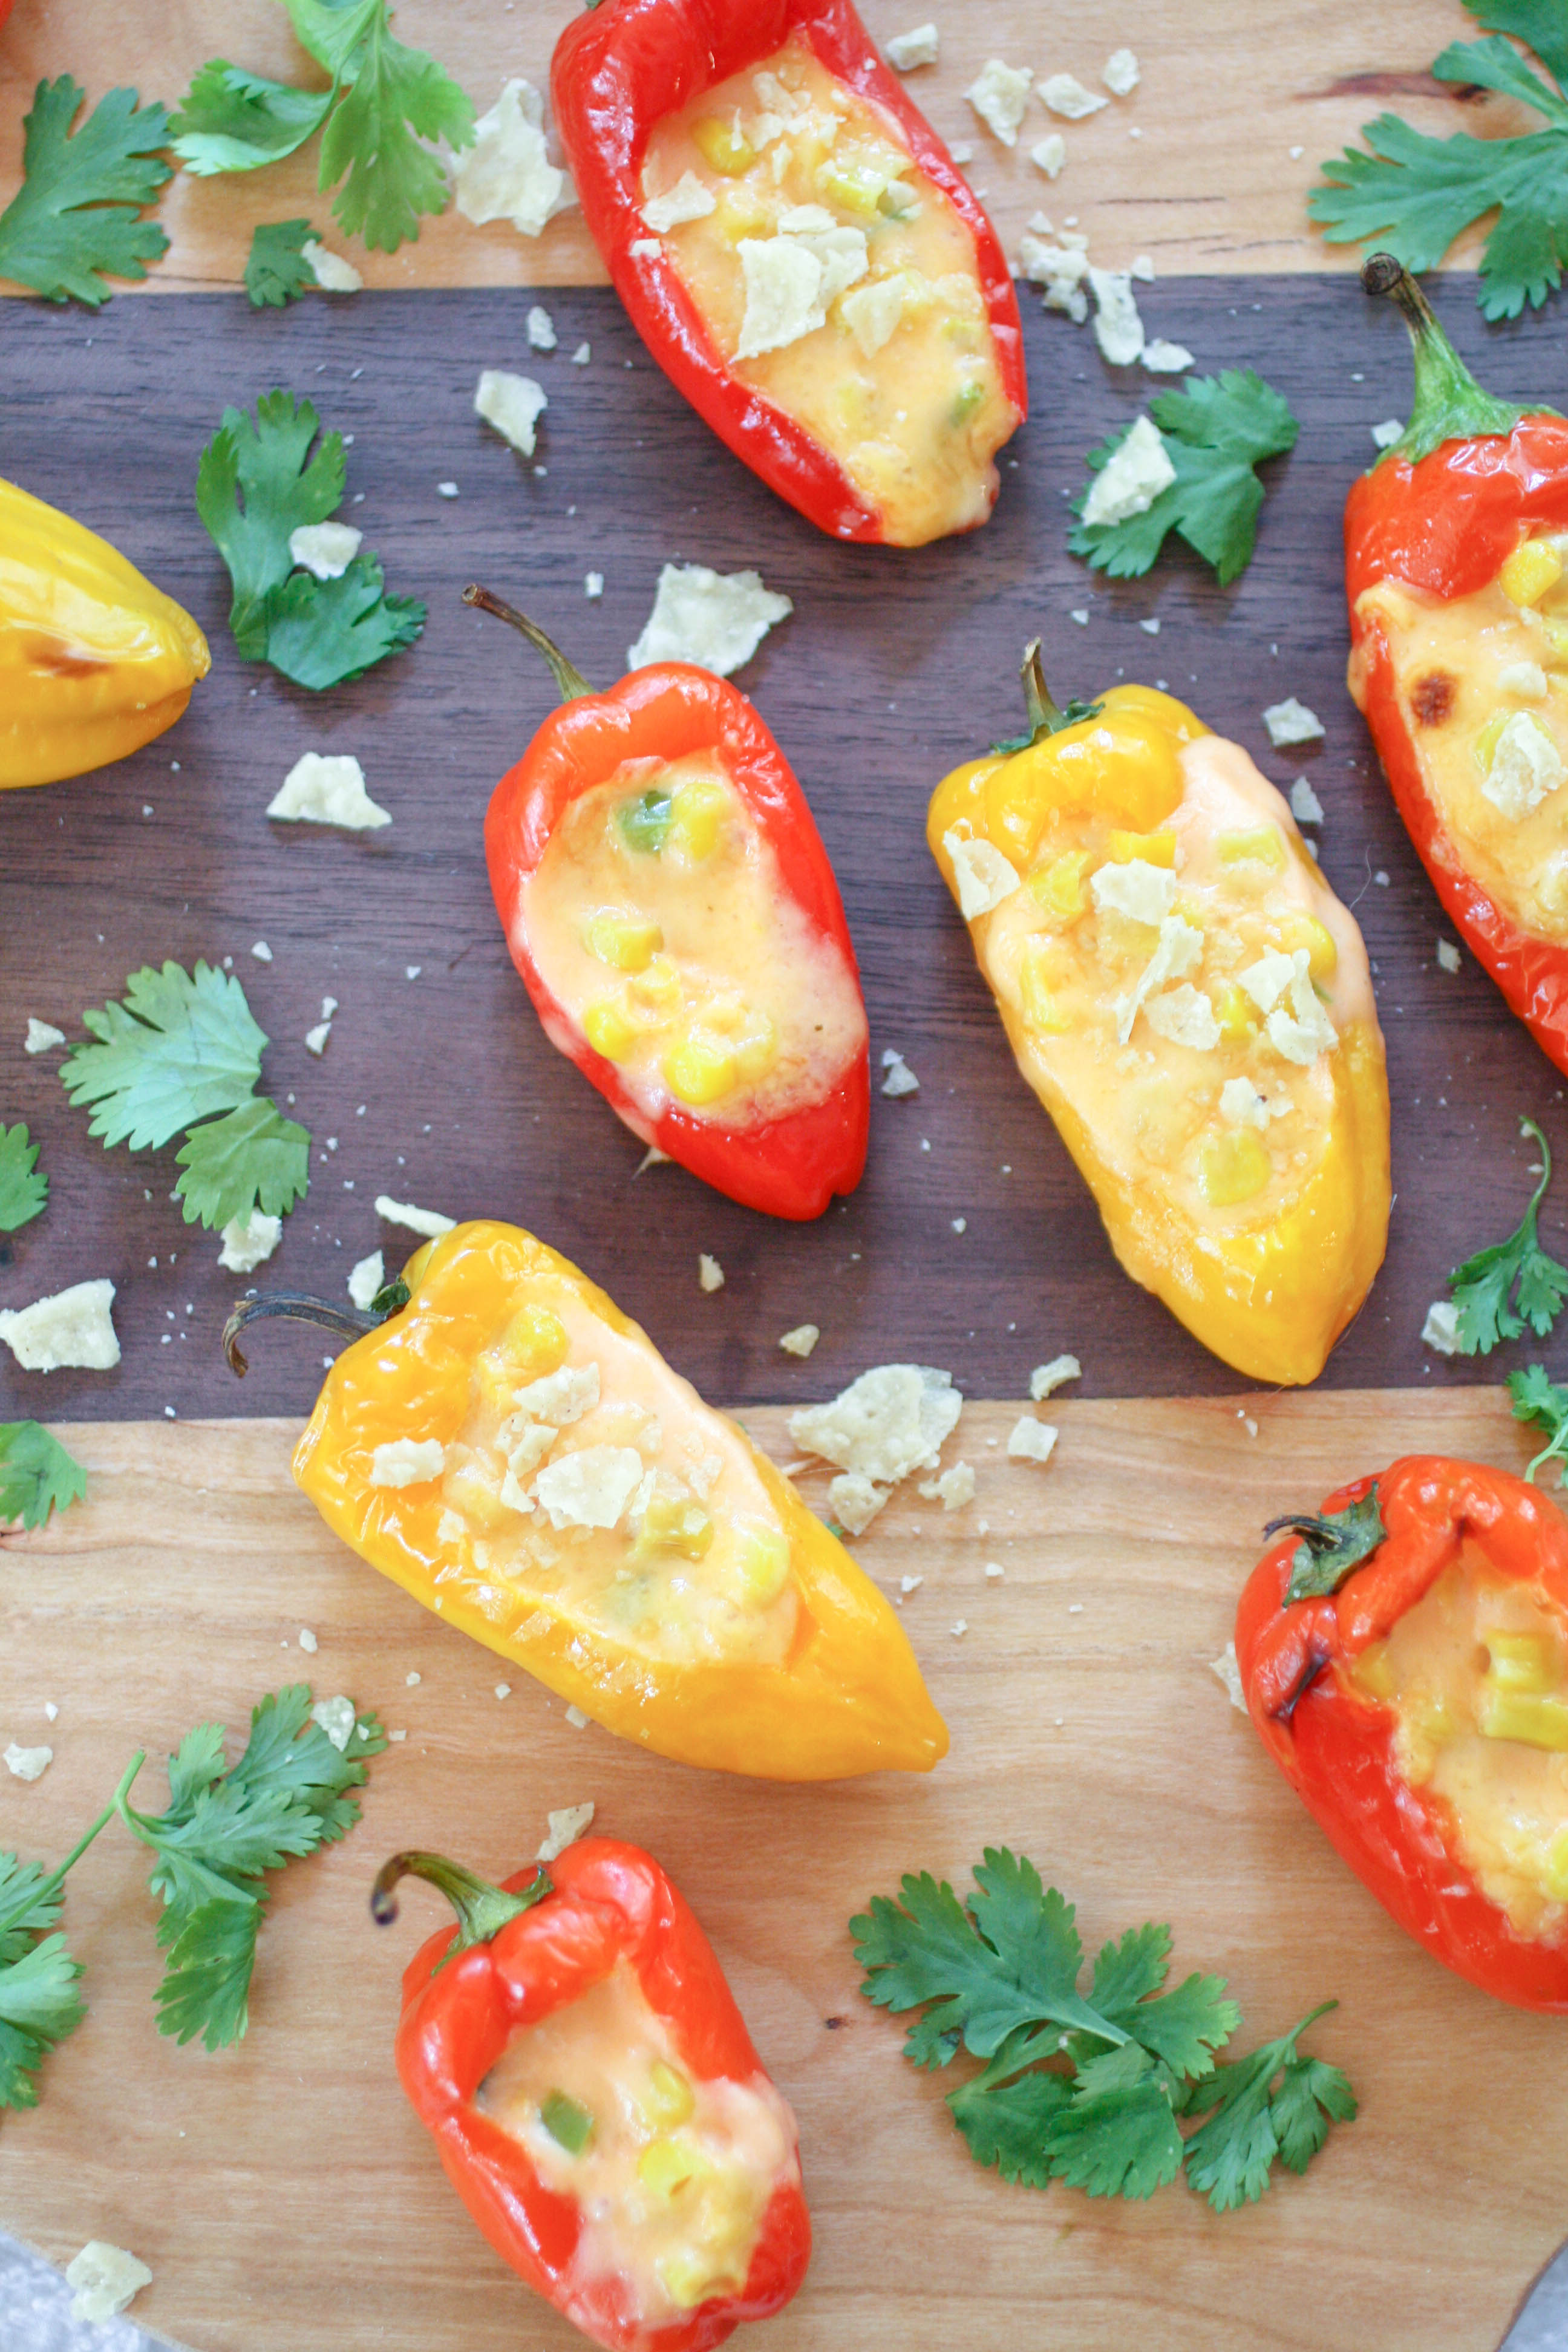 Cheesy Jalapeño & Corn Stuffed Sweet Pepper Poppers are colorful and delicious for your next appetizer! Cheesy Jalapeño & Corn Stuffed Sweet Pepper Poppers are easy to make for any gathering!